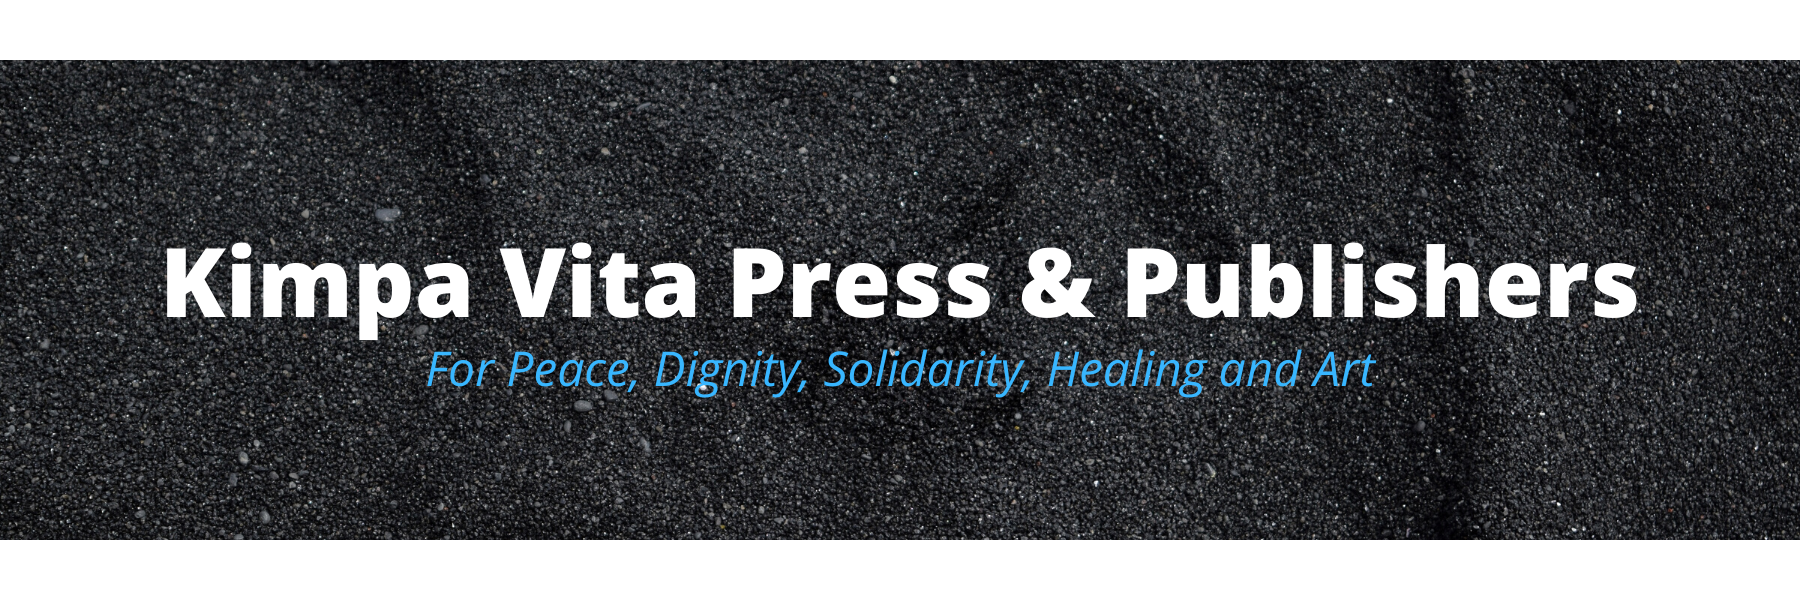 KIMPA VITA PRESS & PUBLISHERS